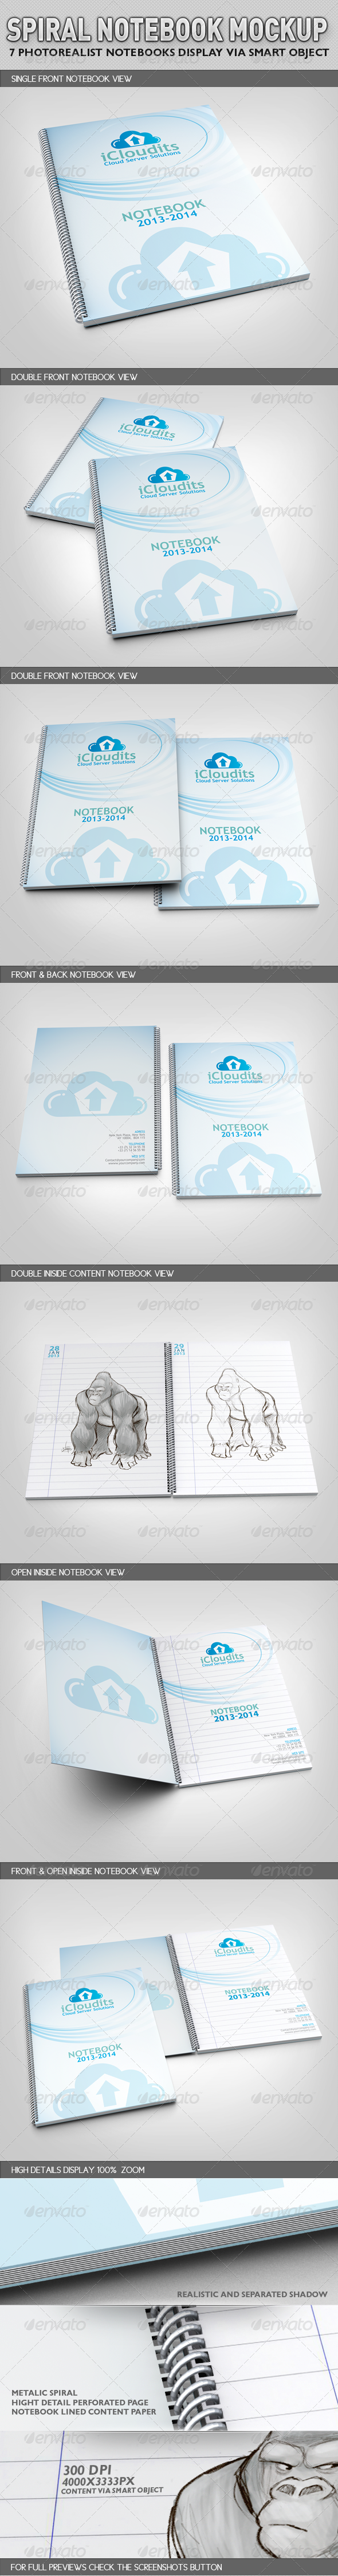 Spiral Notebook Mock-Up - Books Print